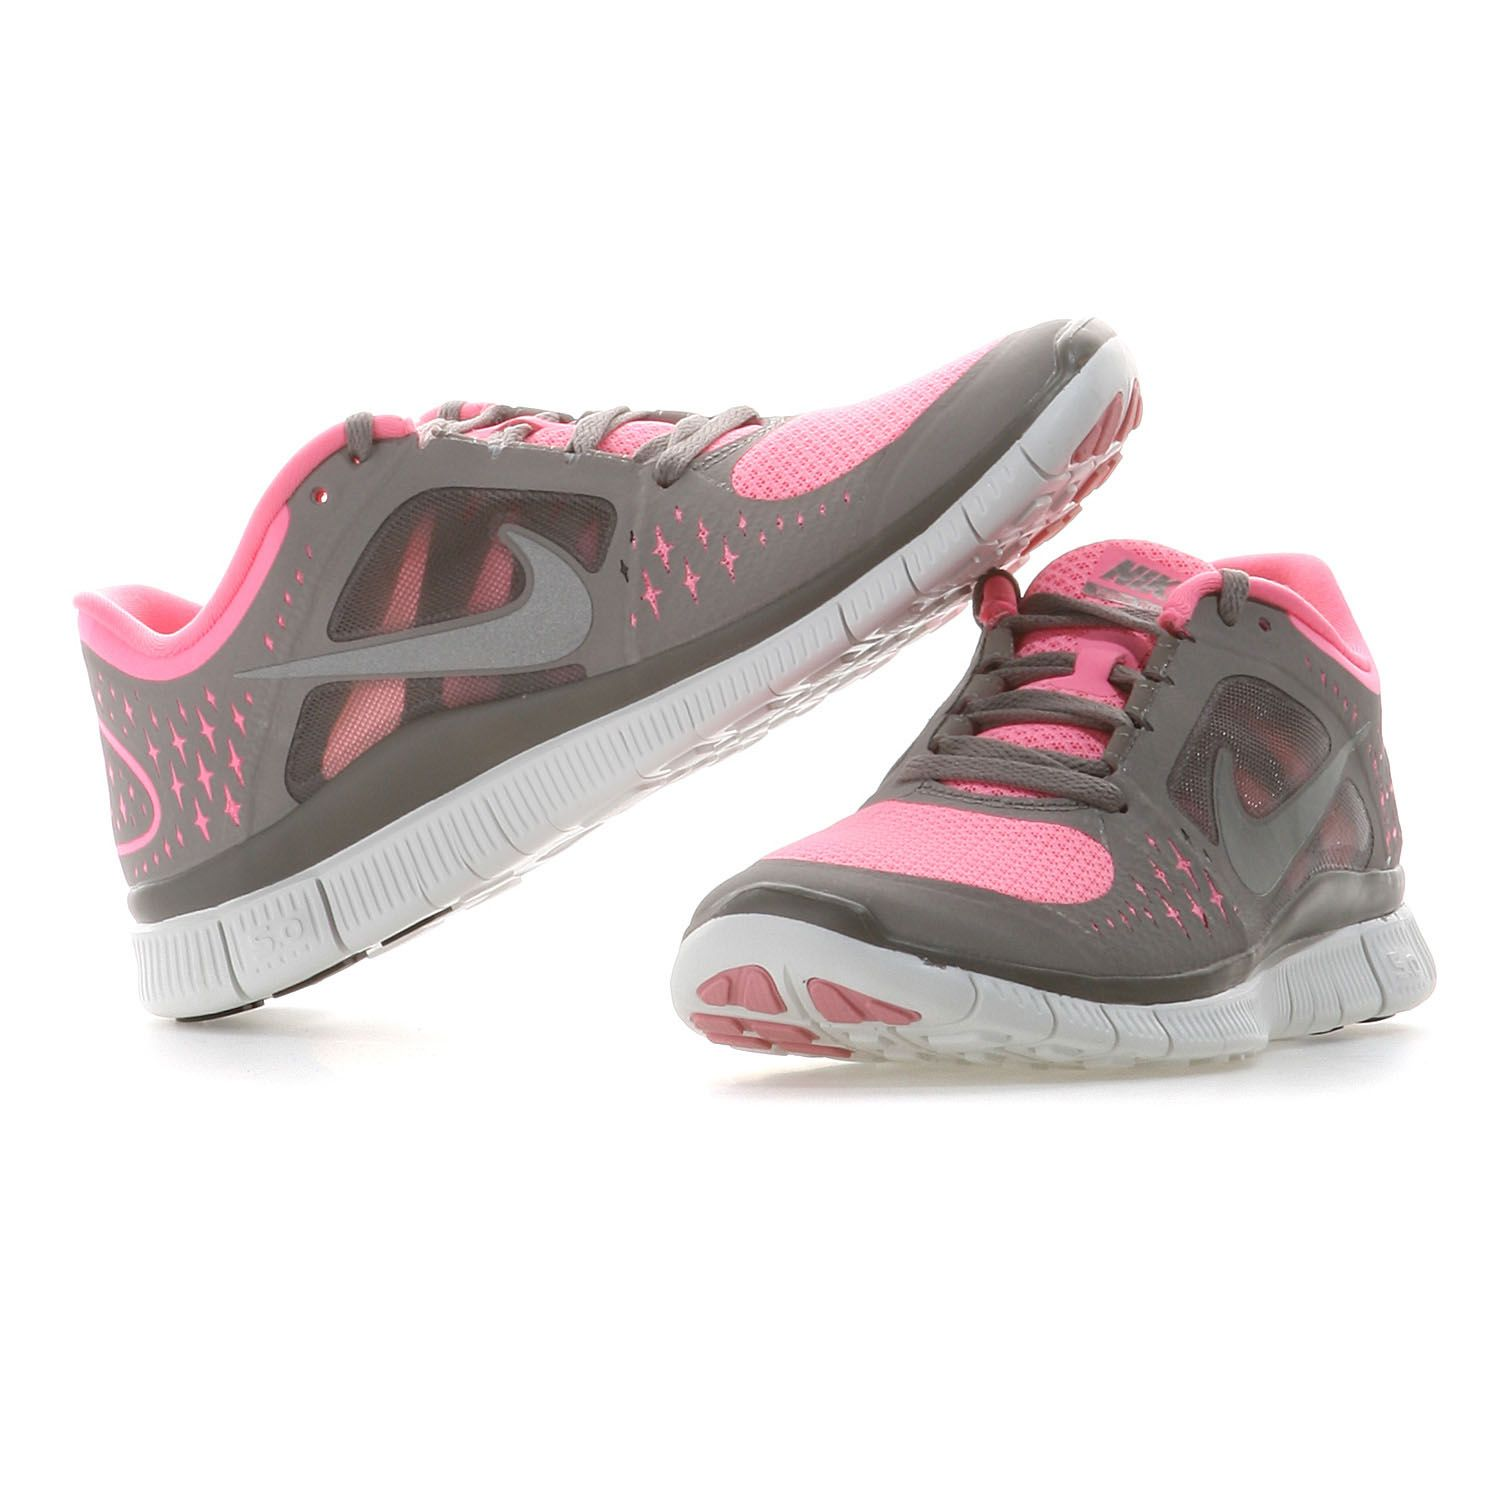 online store 673e1 15a65 Nike Frees are very popular in the gym!